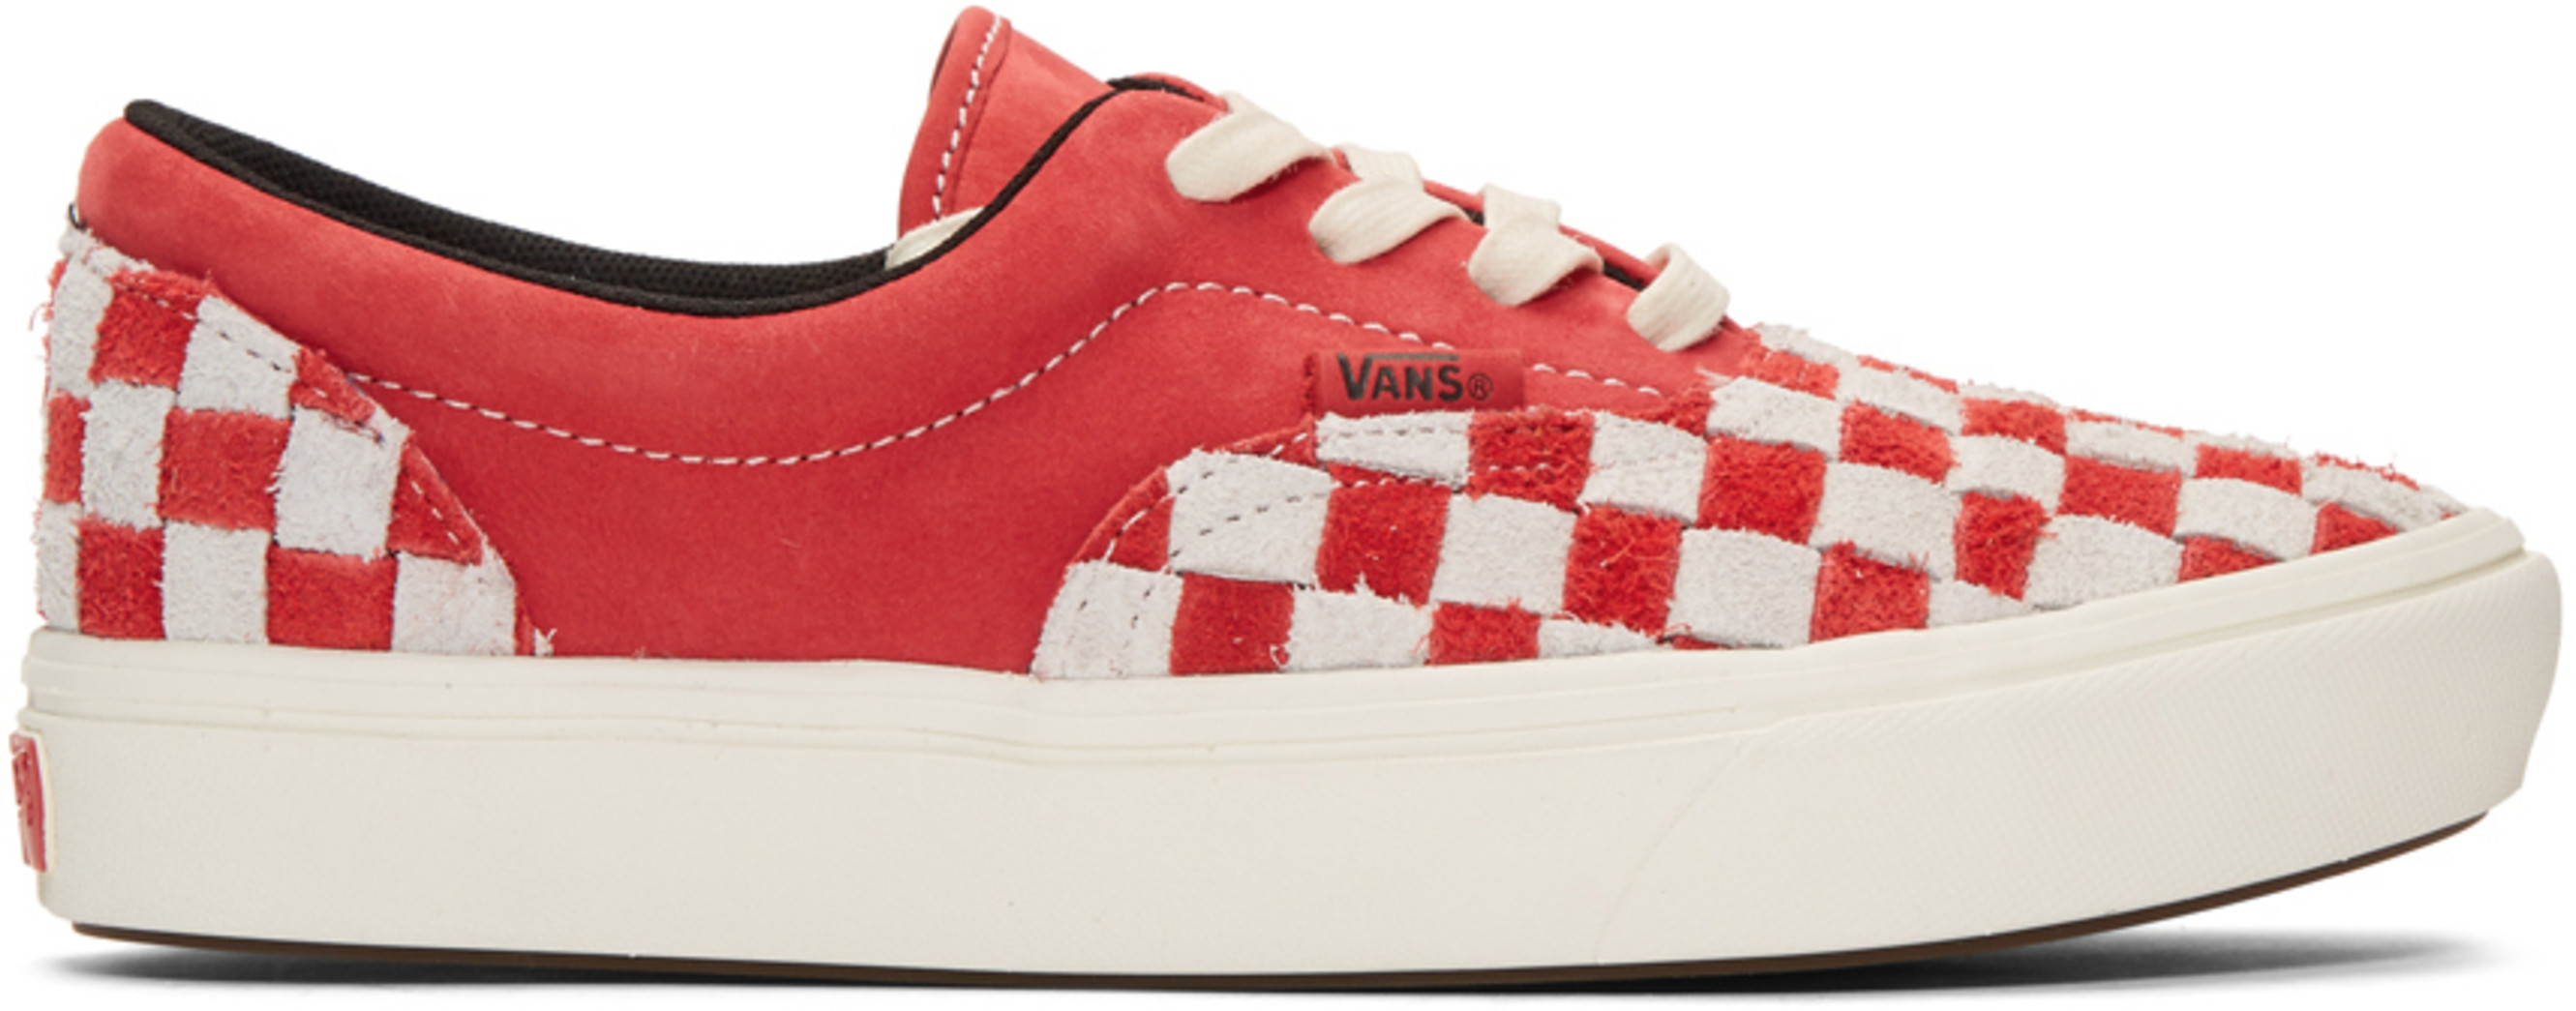 a0c9f89469 Vans for Men SS19 Collection